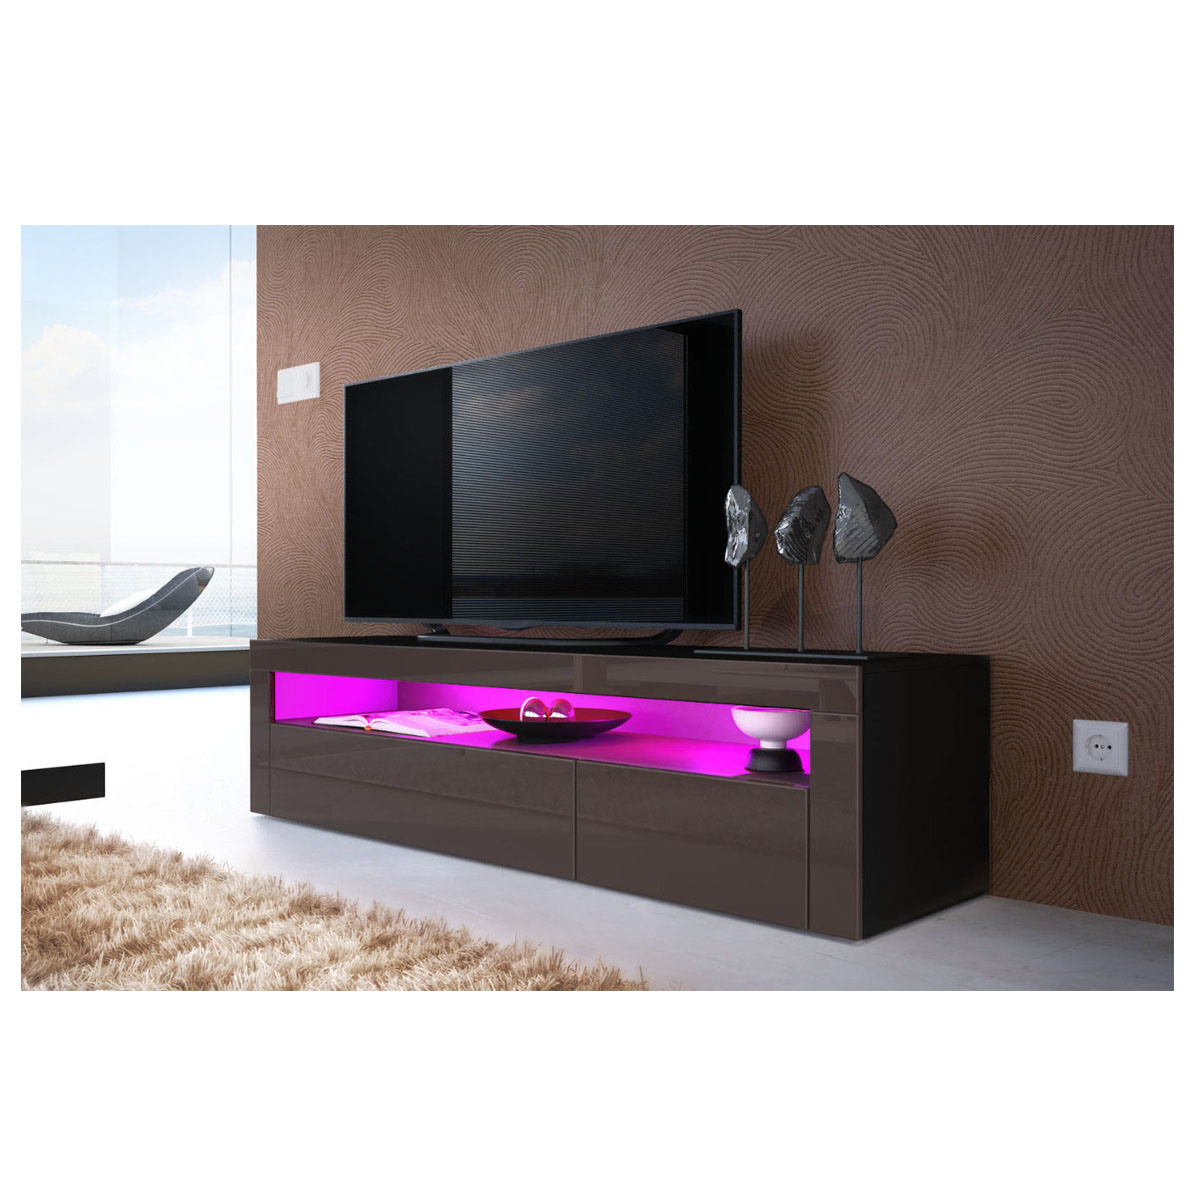 China High Gloss Uv Black Led Light Sideboard Tv Unit In Polar Led Tv Stands (View 14 of 15)